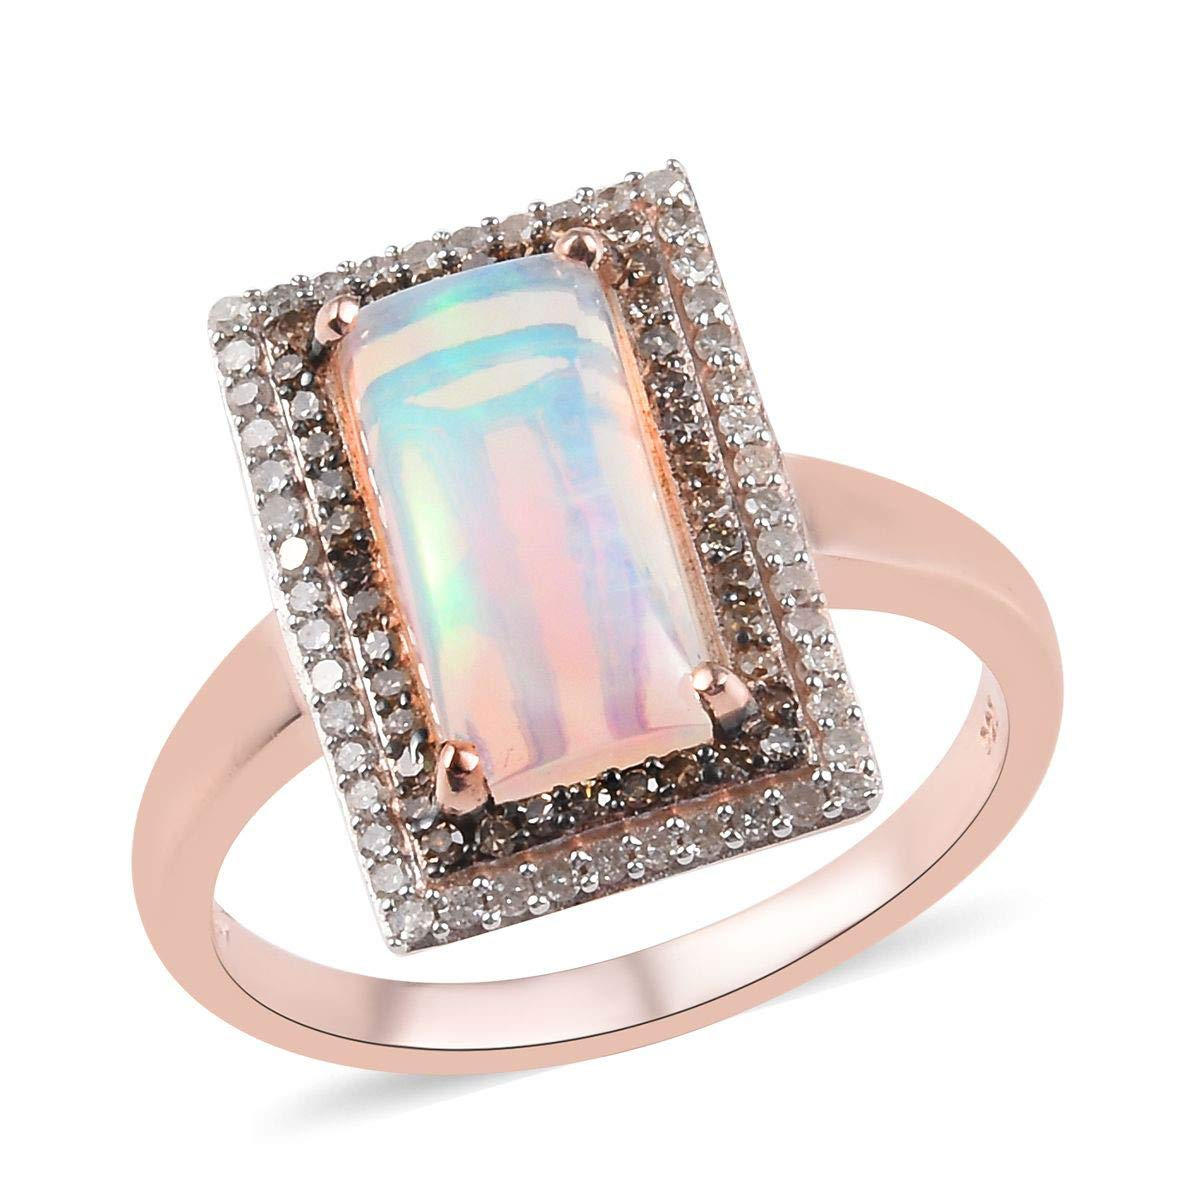 925 Sterling Silver Vermeil Rose Gold Plated Opal Diamond H-I Color I3 Clarity Halo Ring Jewelry for Women Ct 0.6